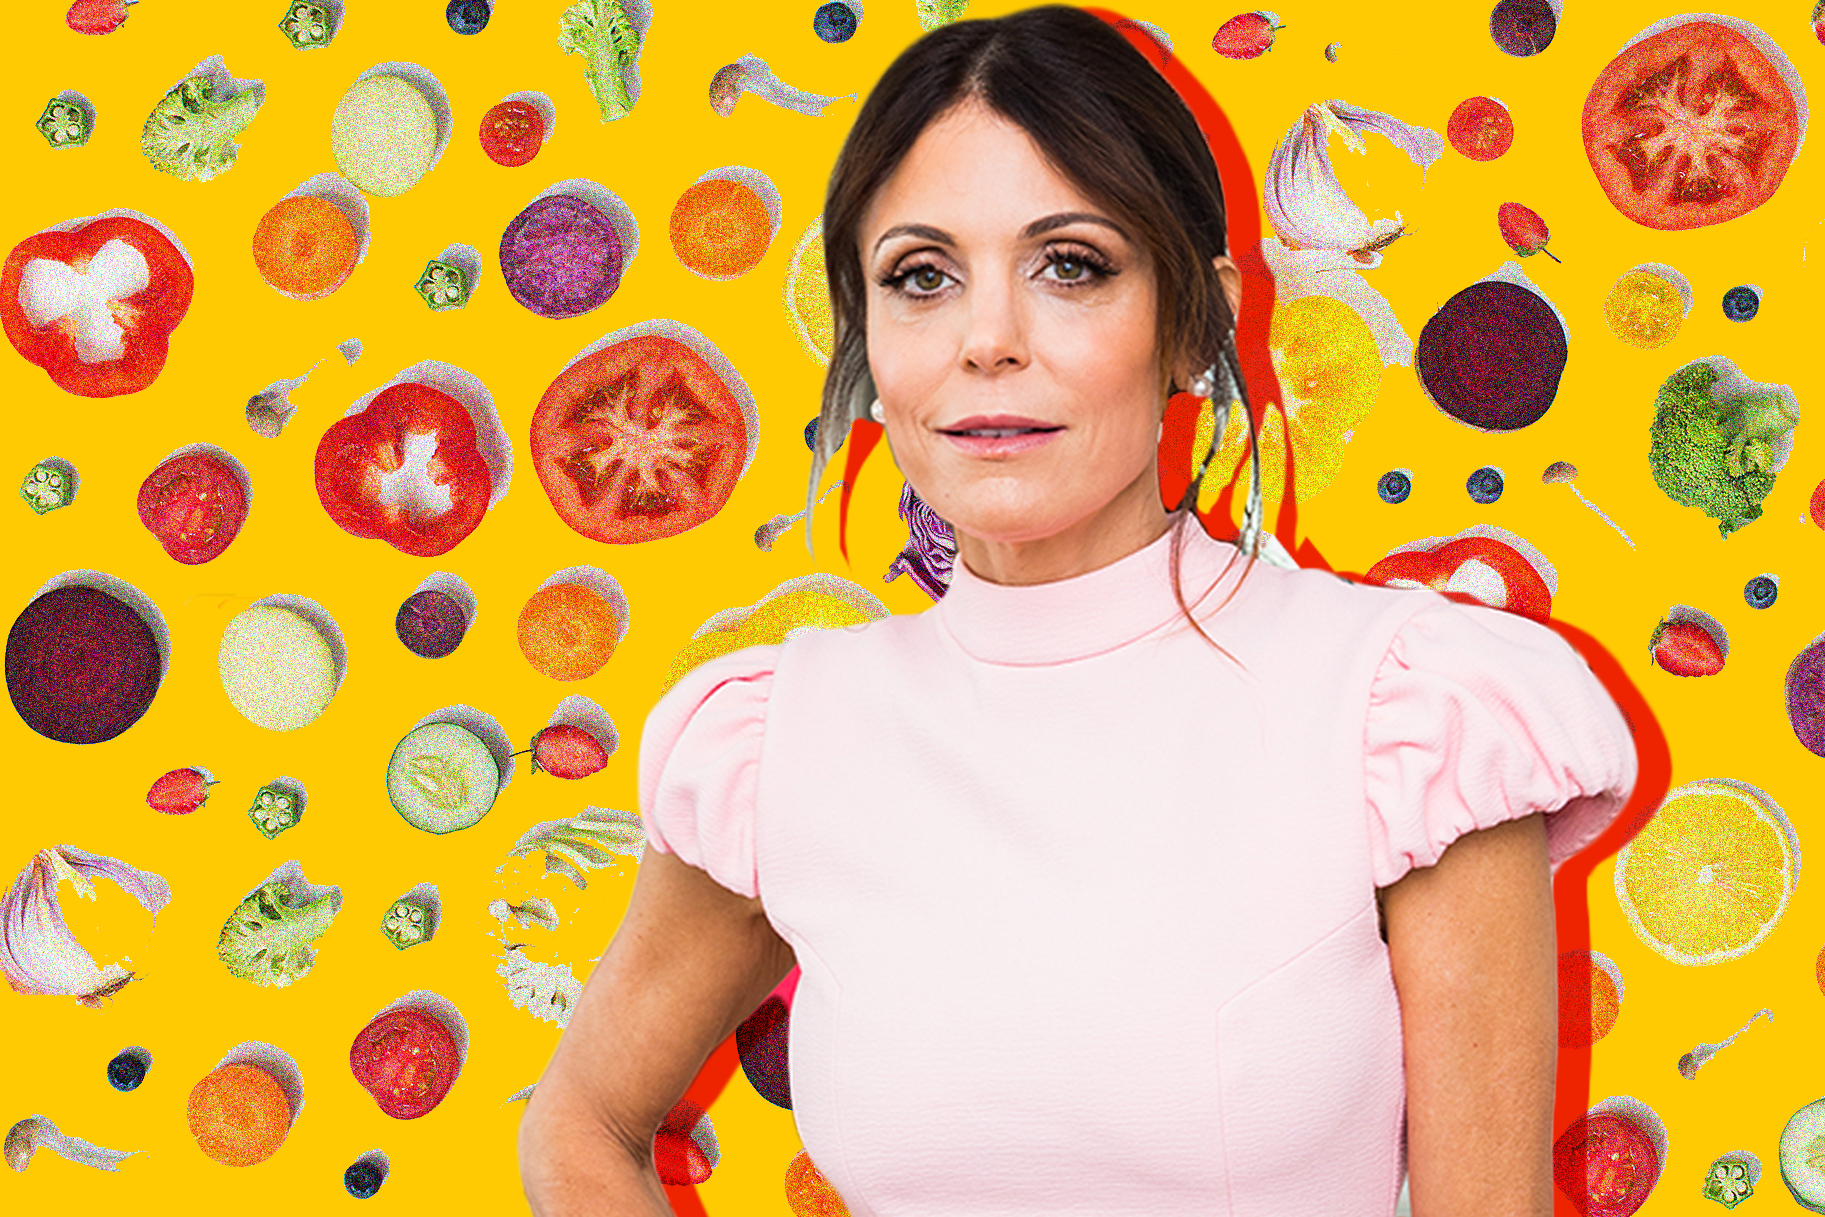 The Feast Bethenny Frankel Promote